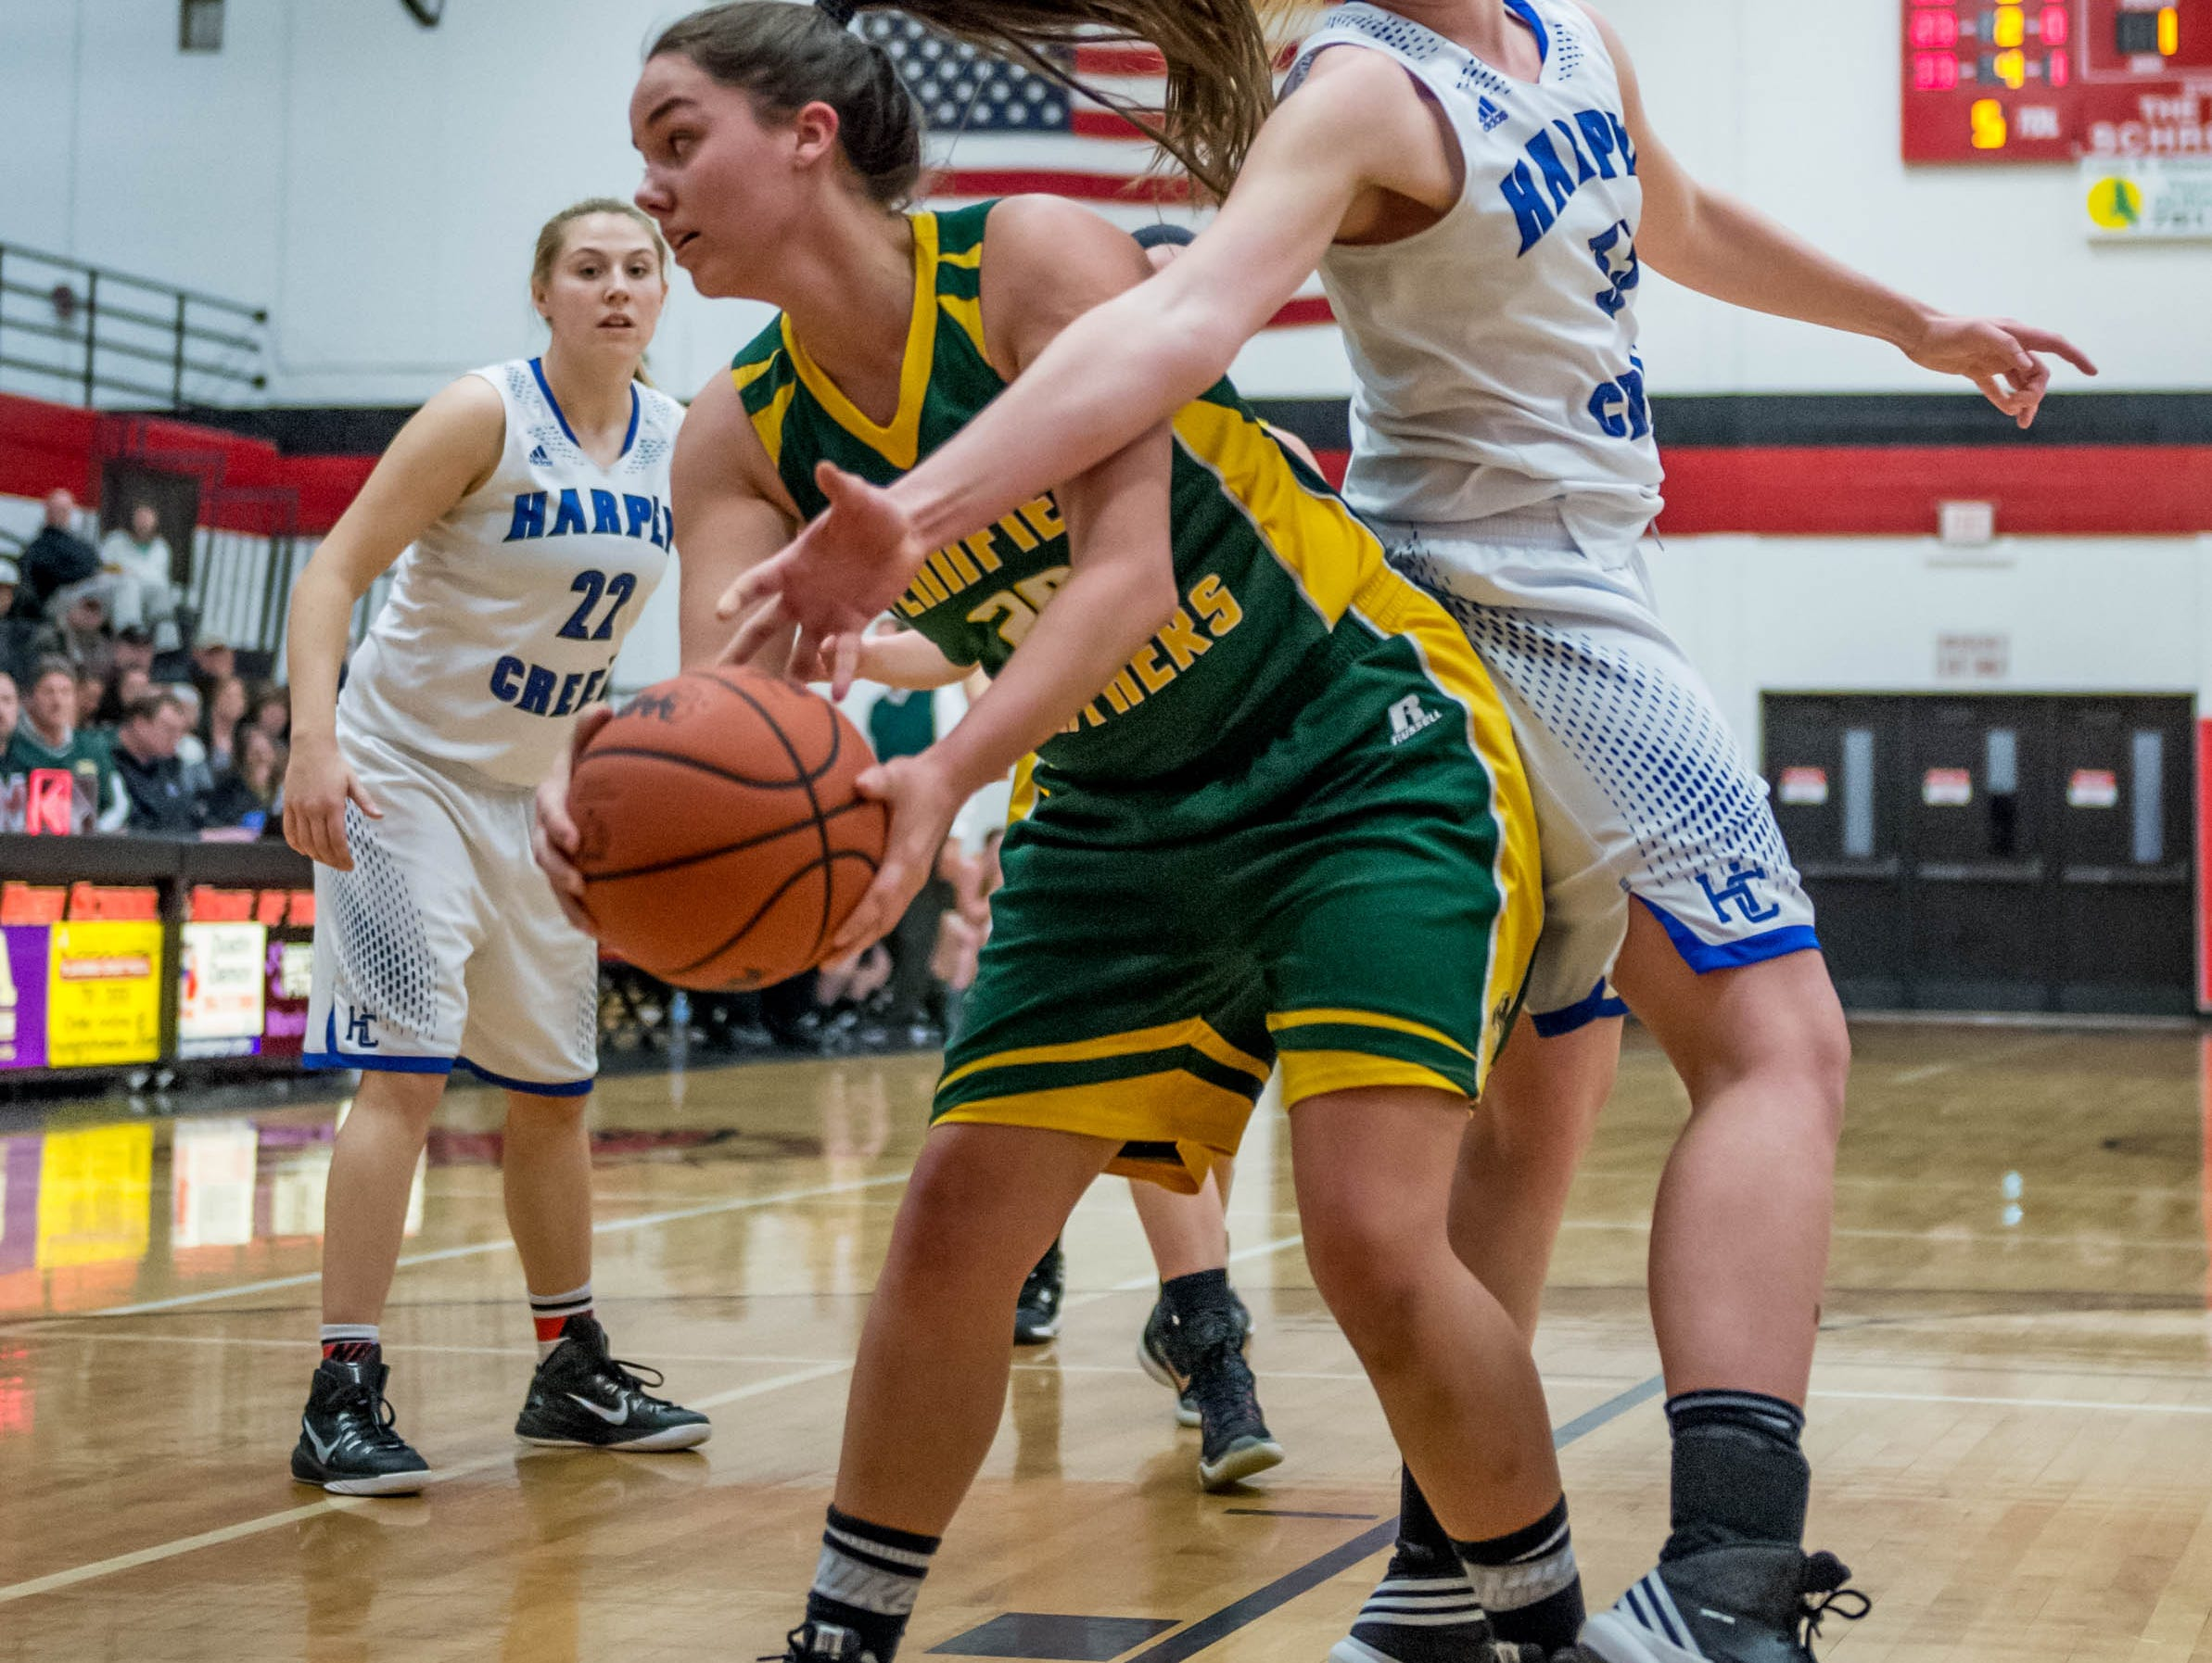 Harper Creek's Olivia Leson (33) goes for the ball from Pennfield's Brooke Lenz (20) in first round of districts game at Marshall Monday evening.